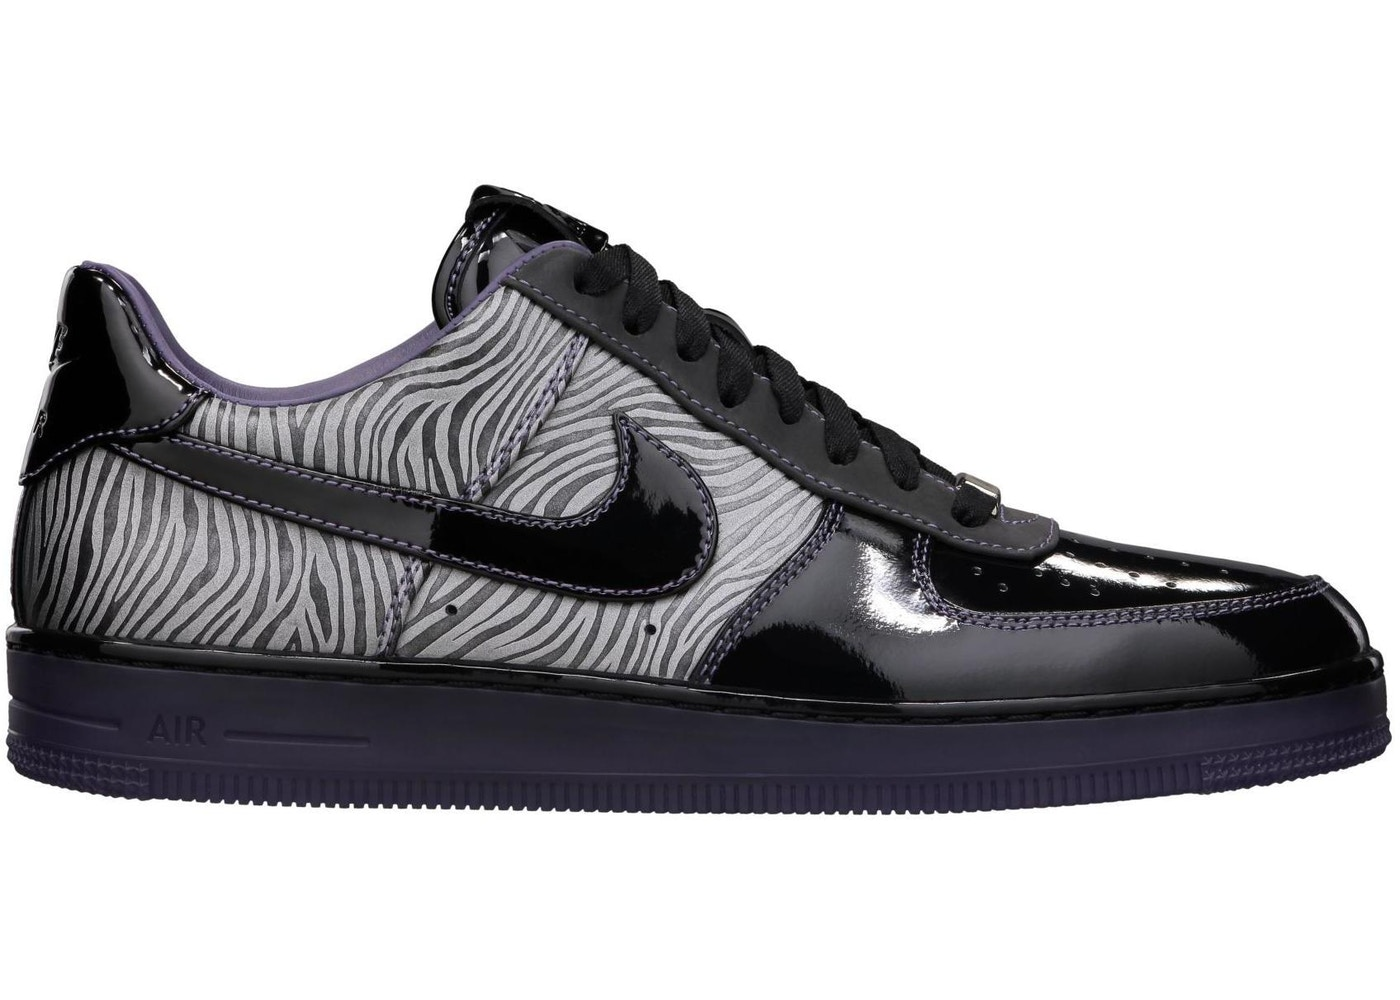 size 40 4dfcc 37e22 Air Force 1 Low Downtown Zebra - 573979-003